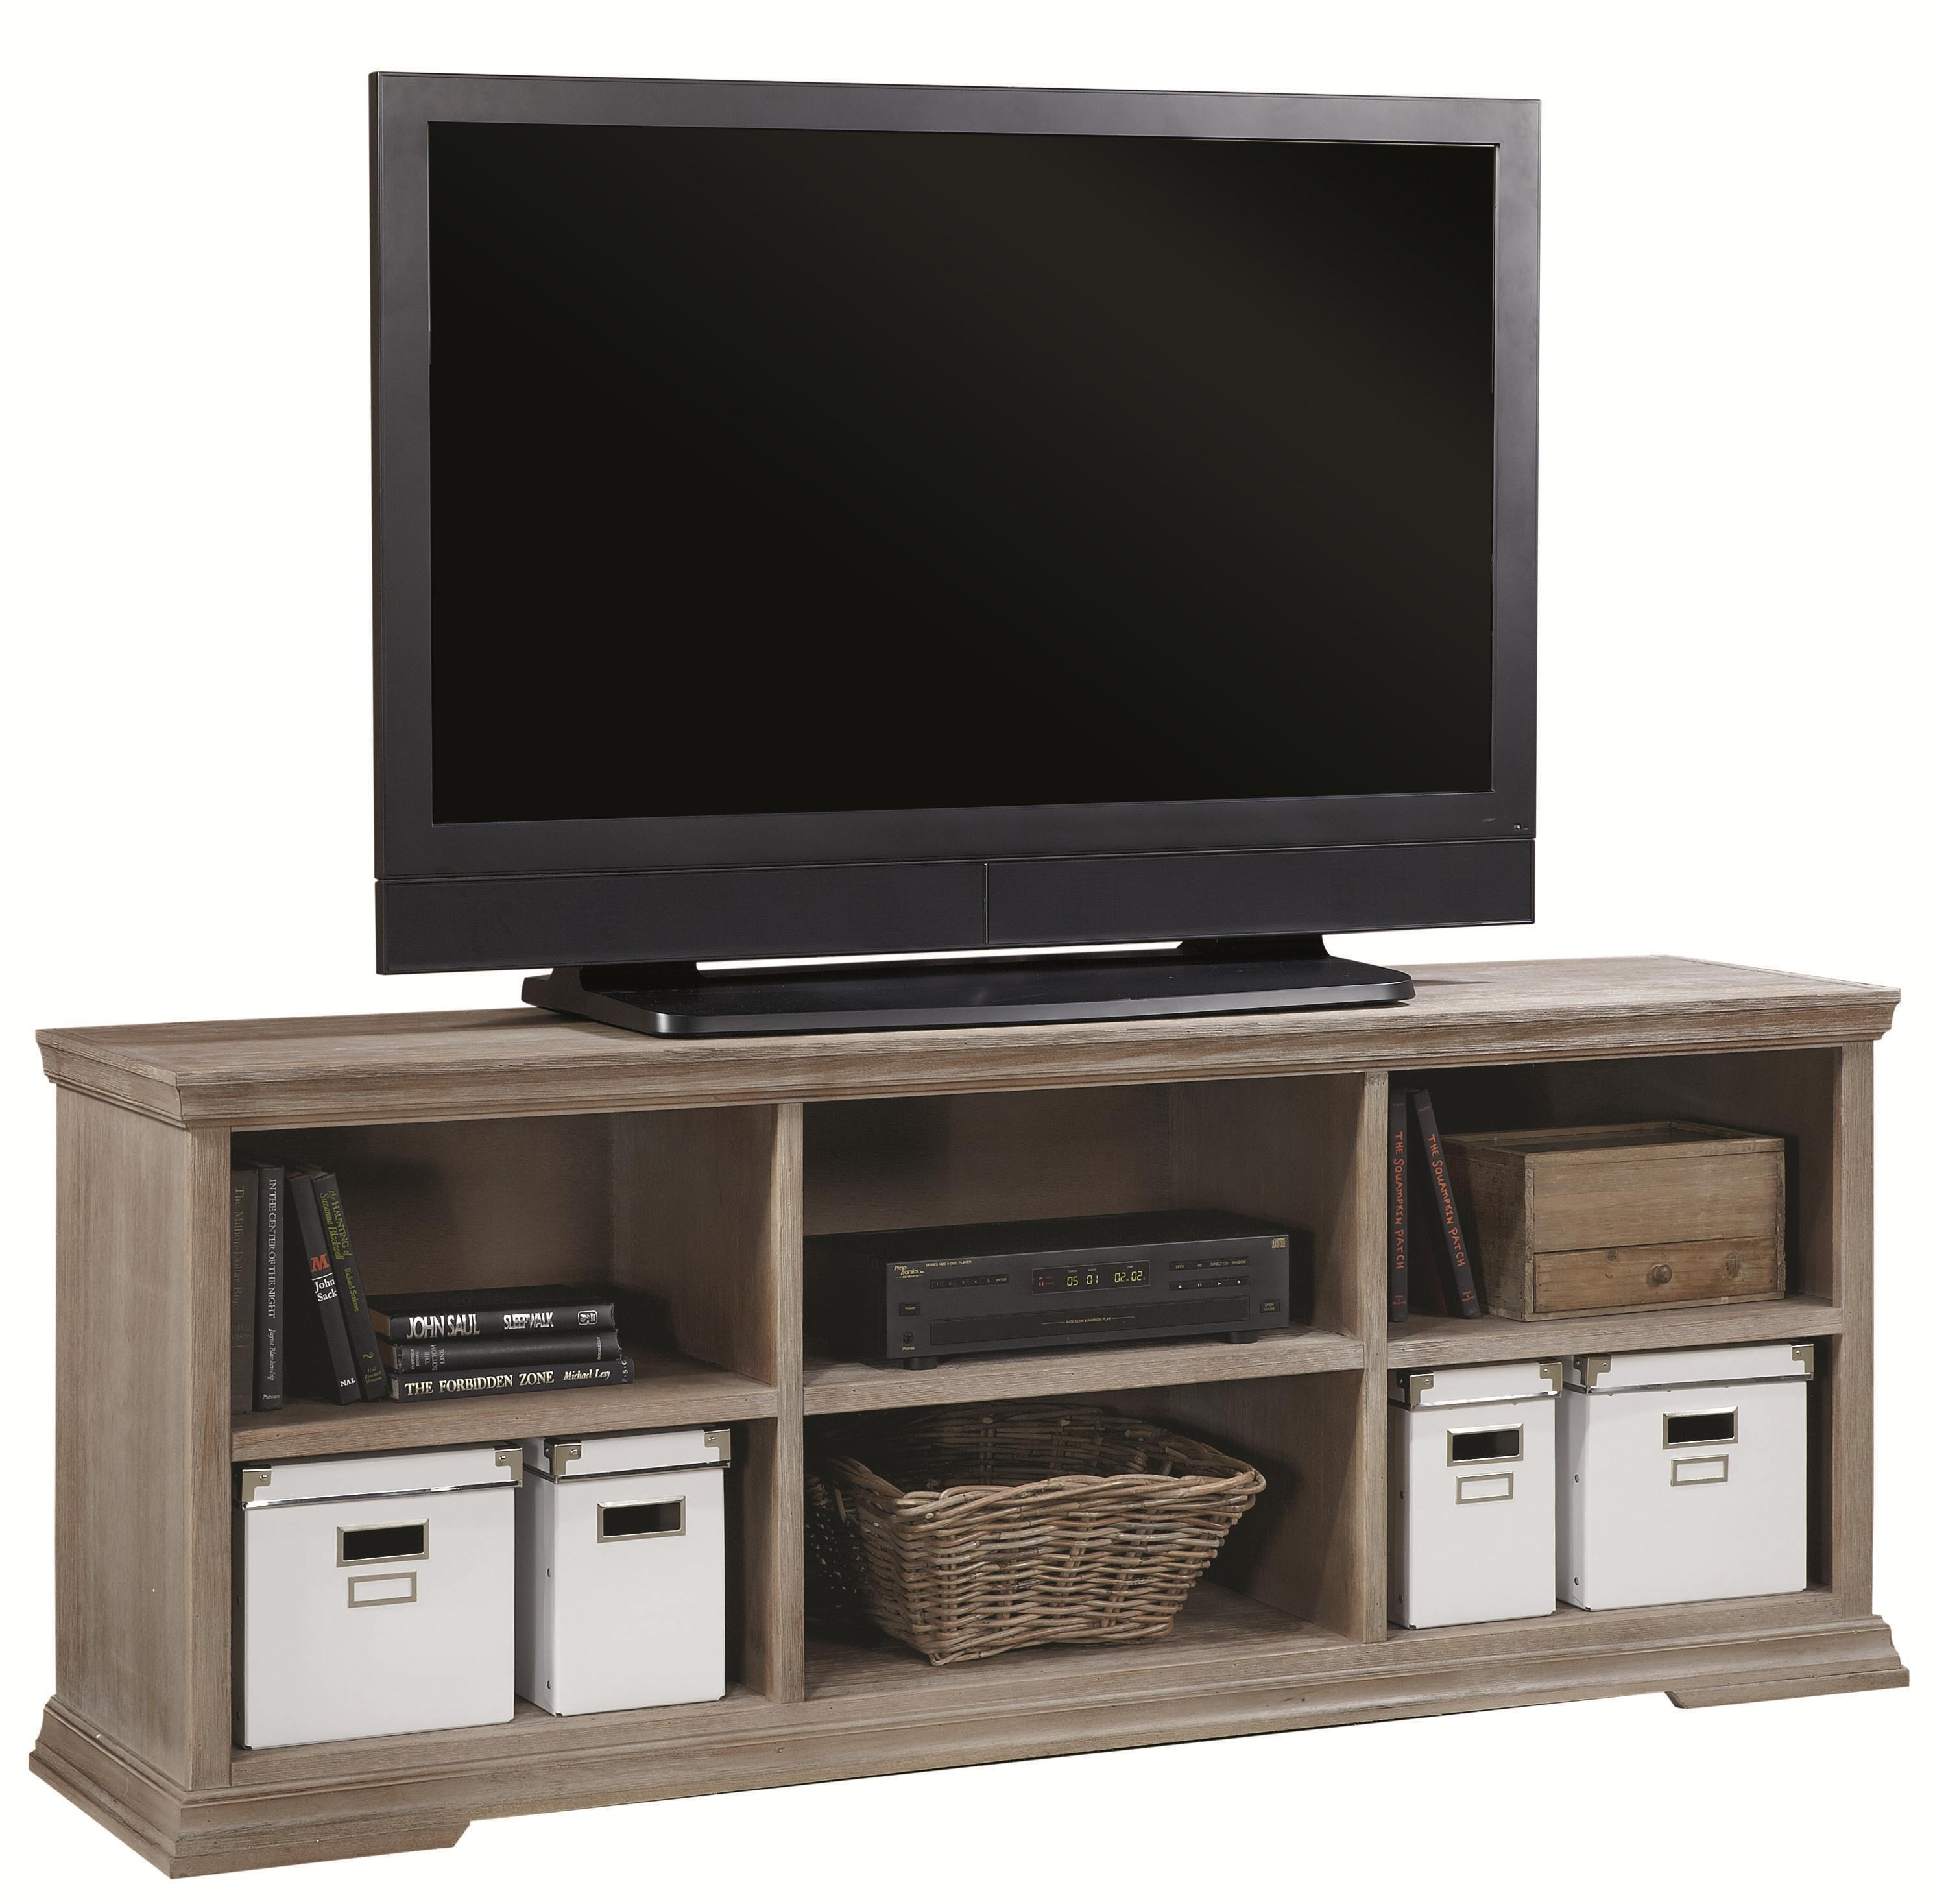 Aspenhome Canyon Creek TV Console - Item Number: WCK1071-DRF